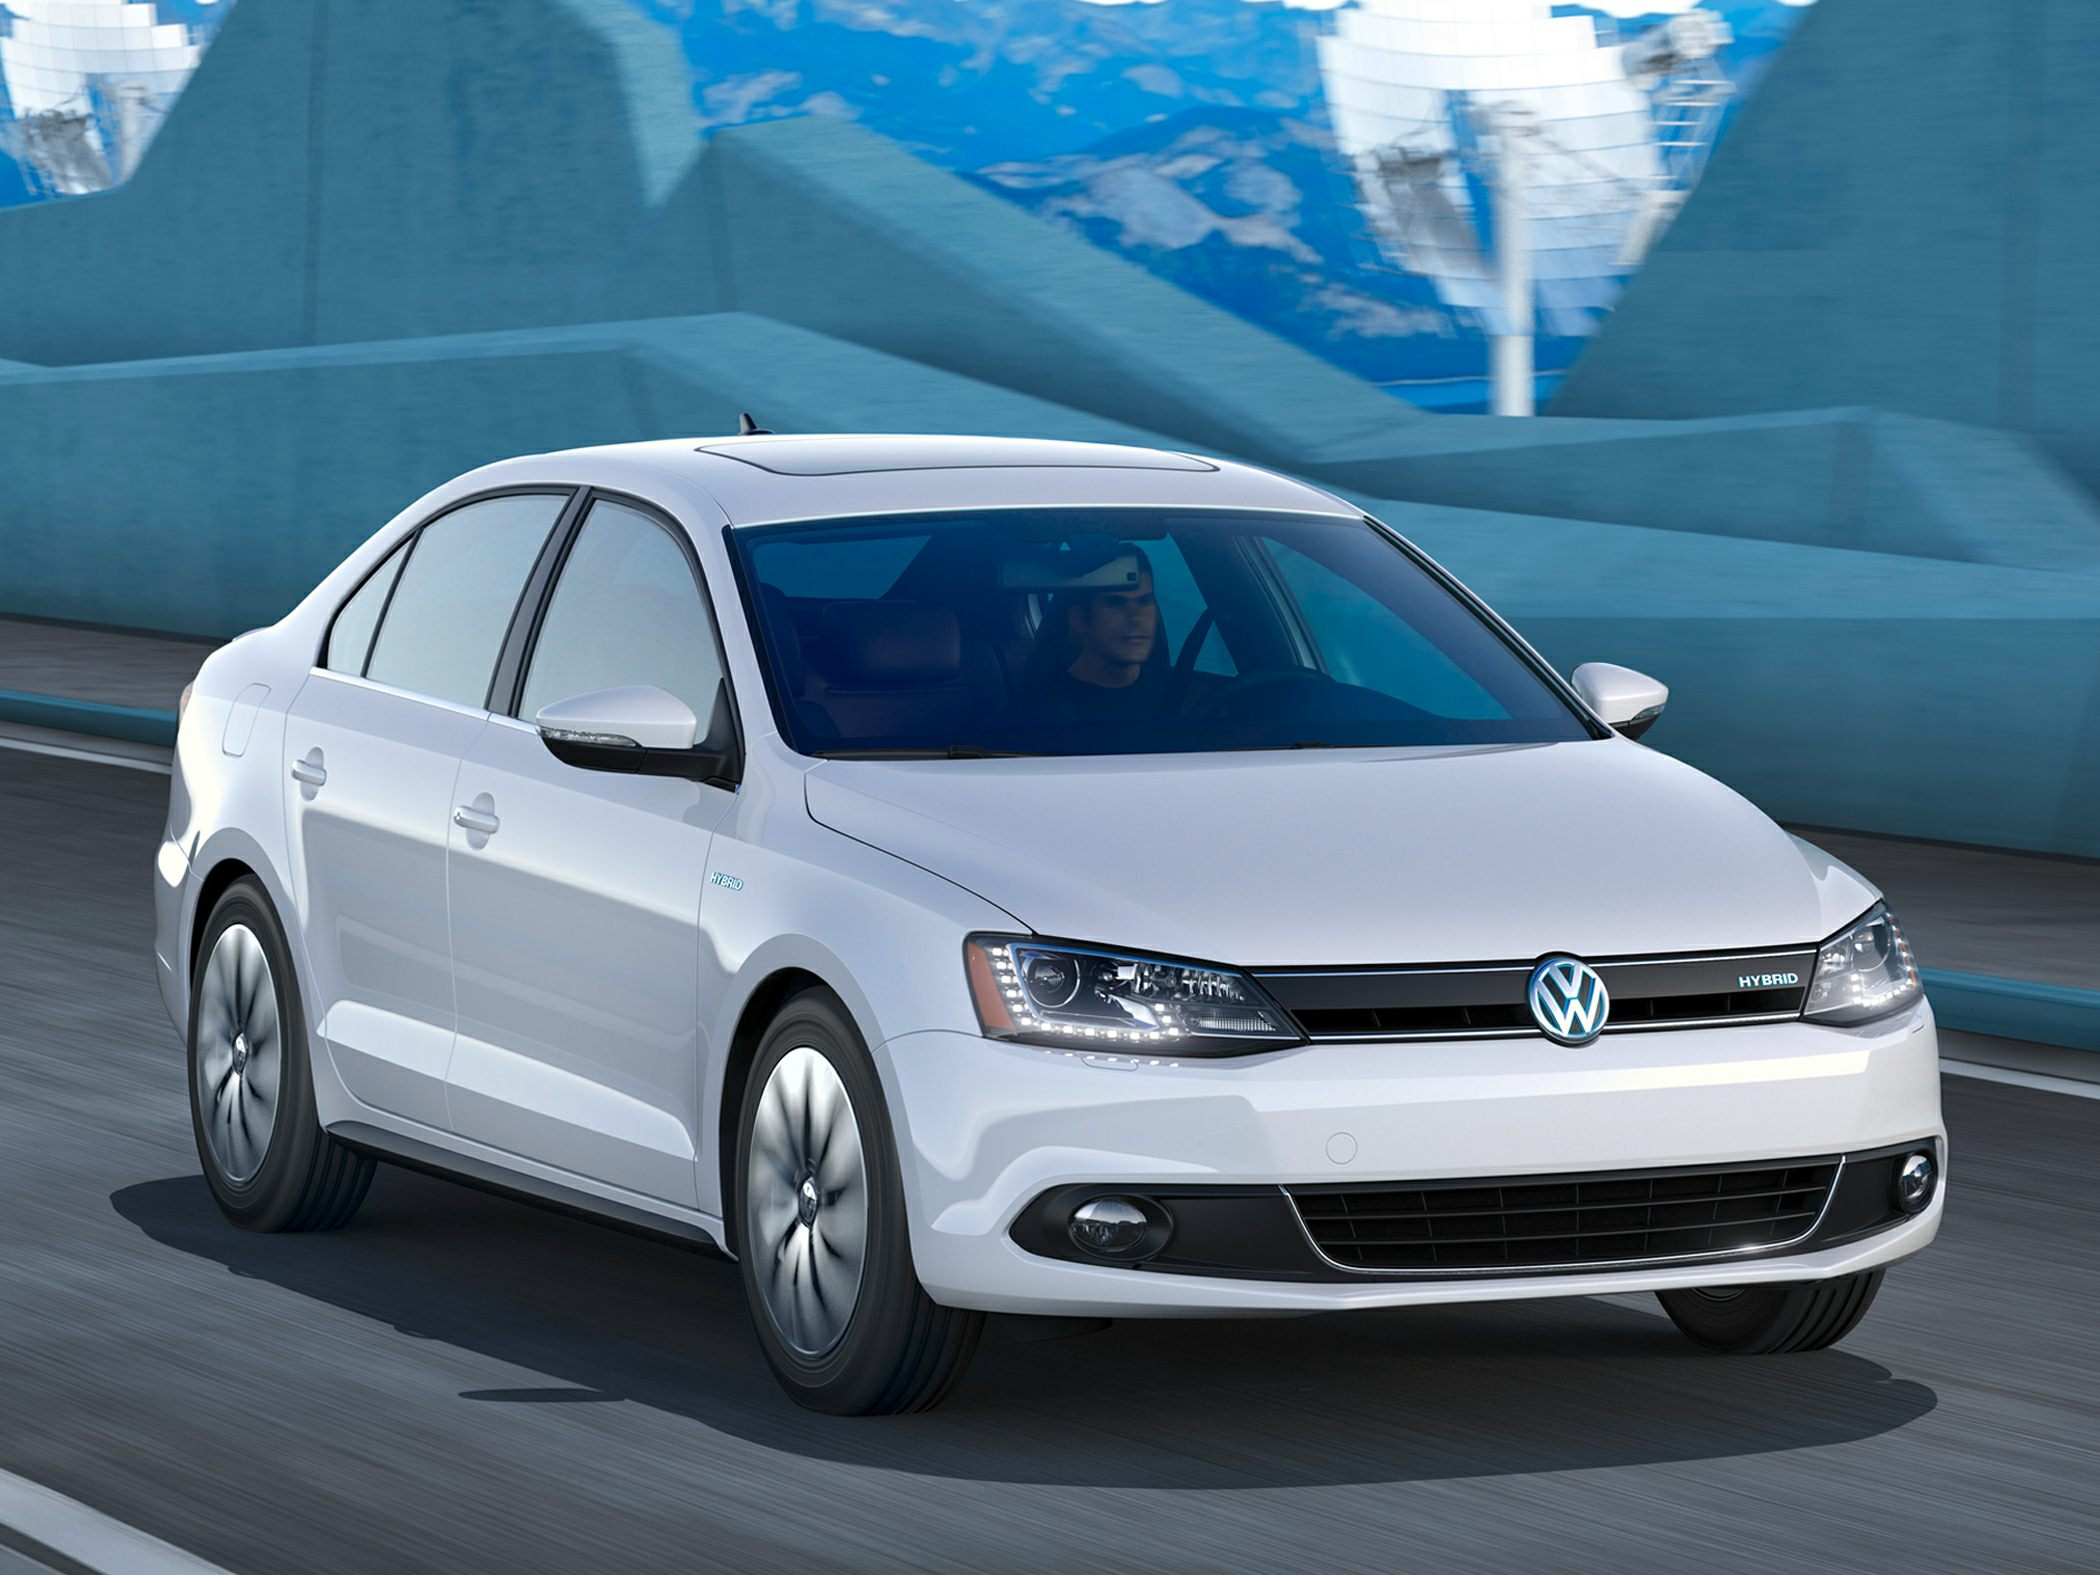 2014 Volkswagen Jetta Hybrid Owners Manual